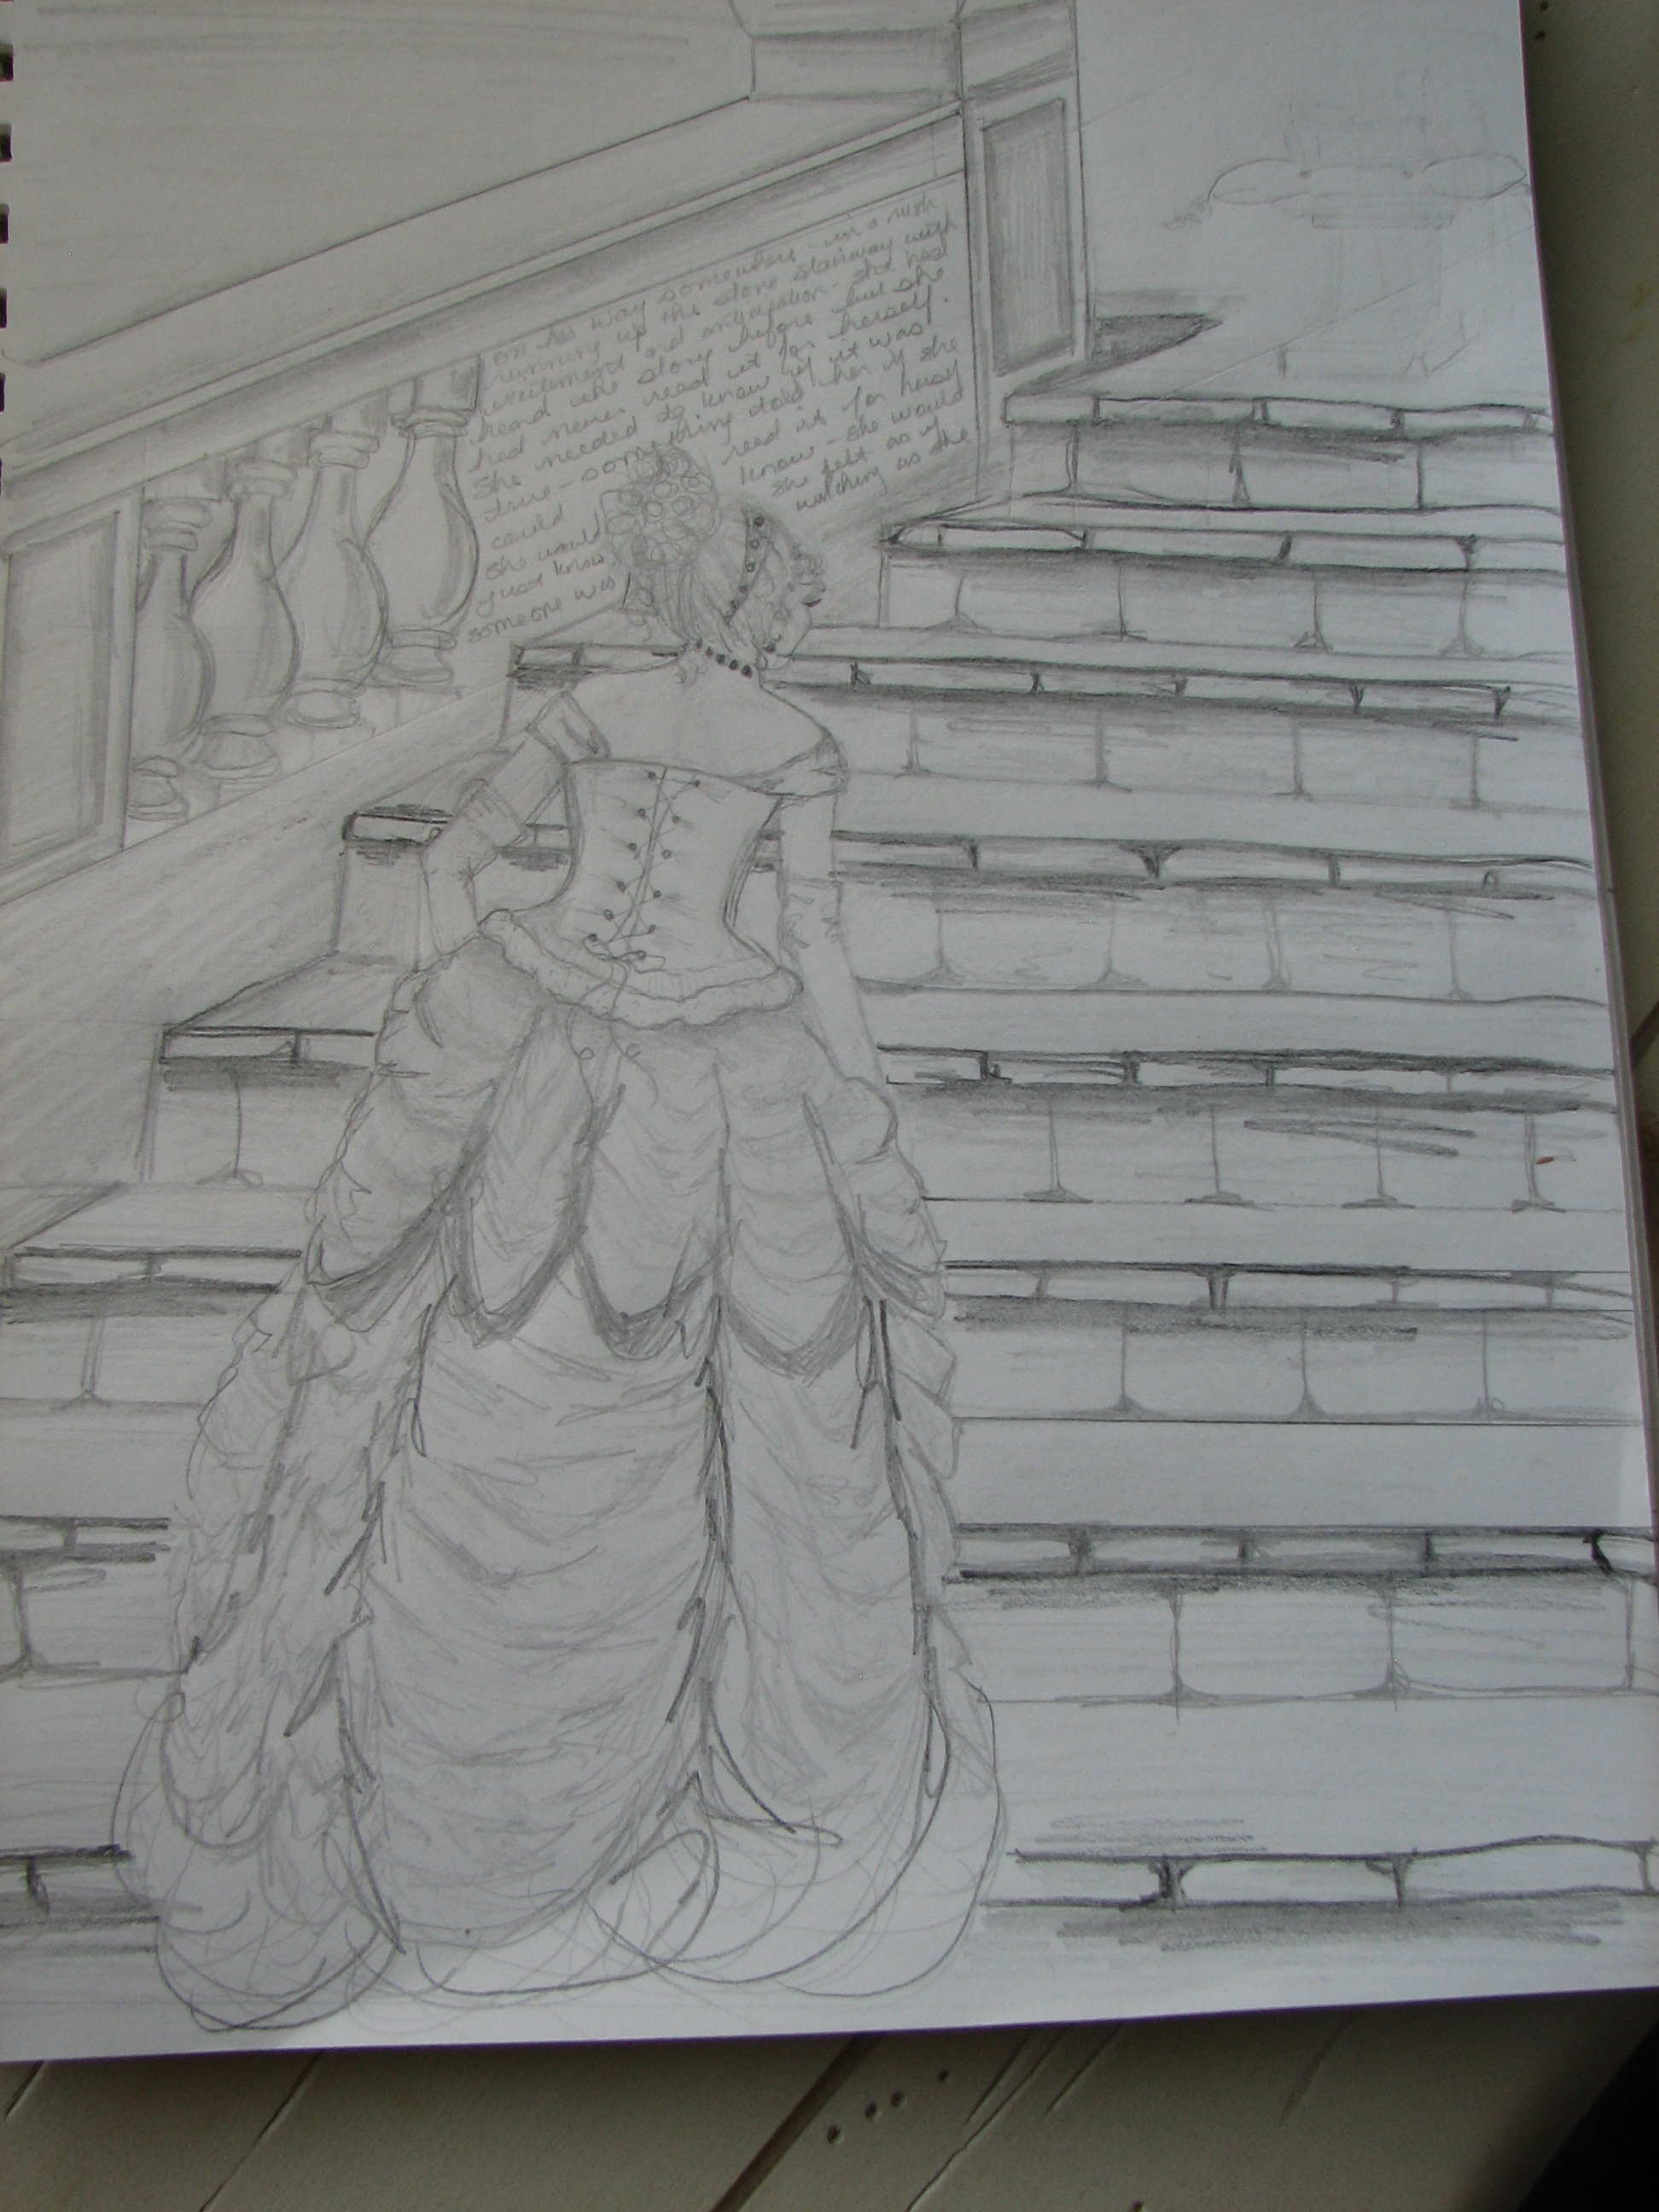 Drawn scenic senary Project of Greatness